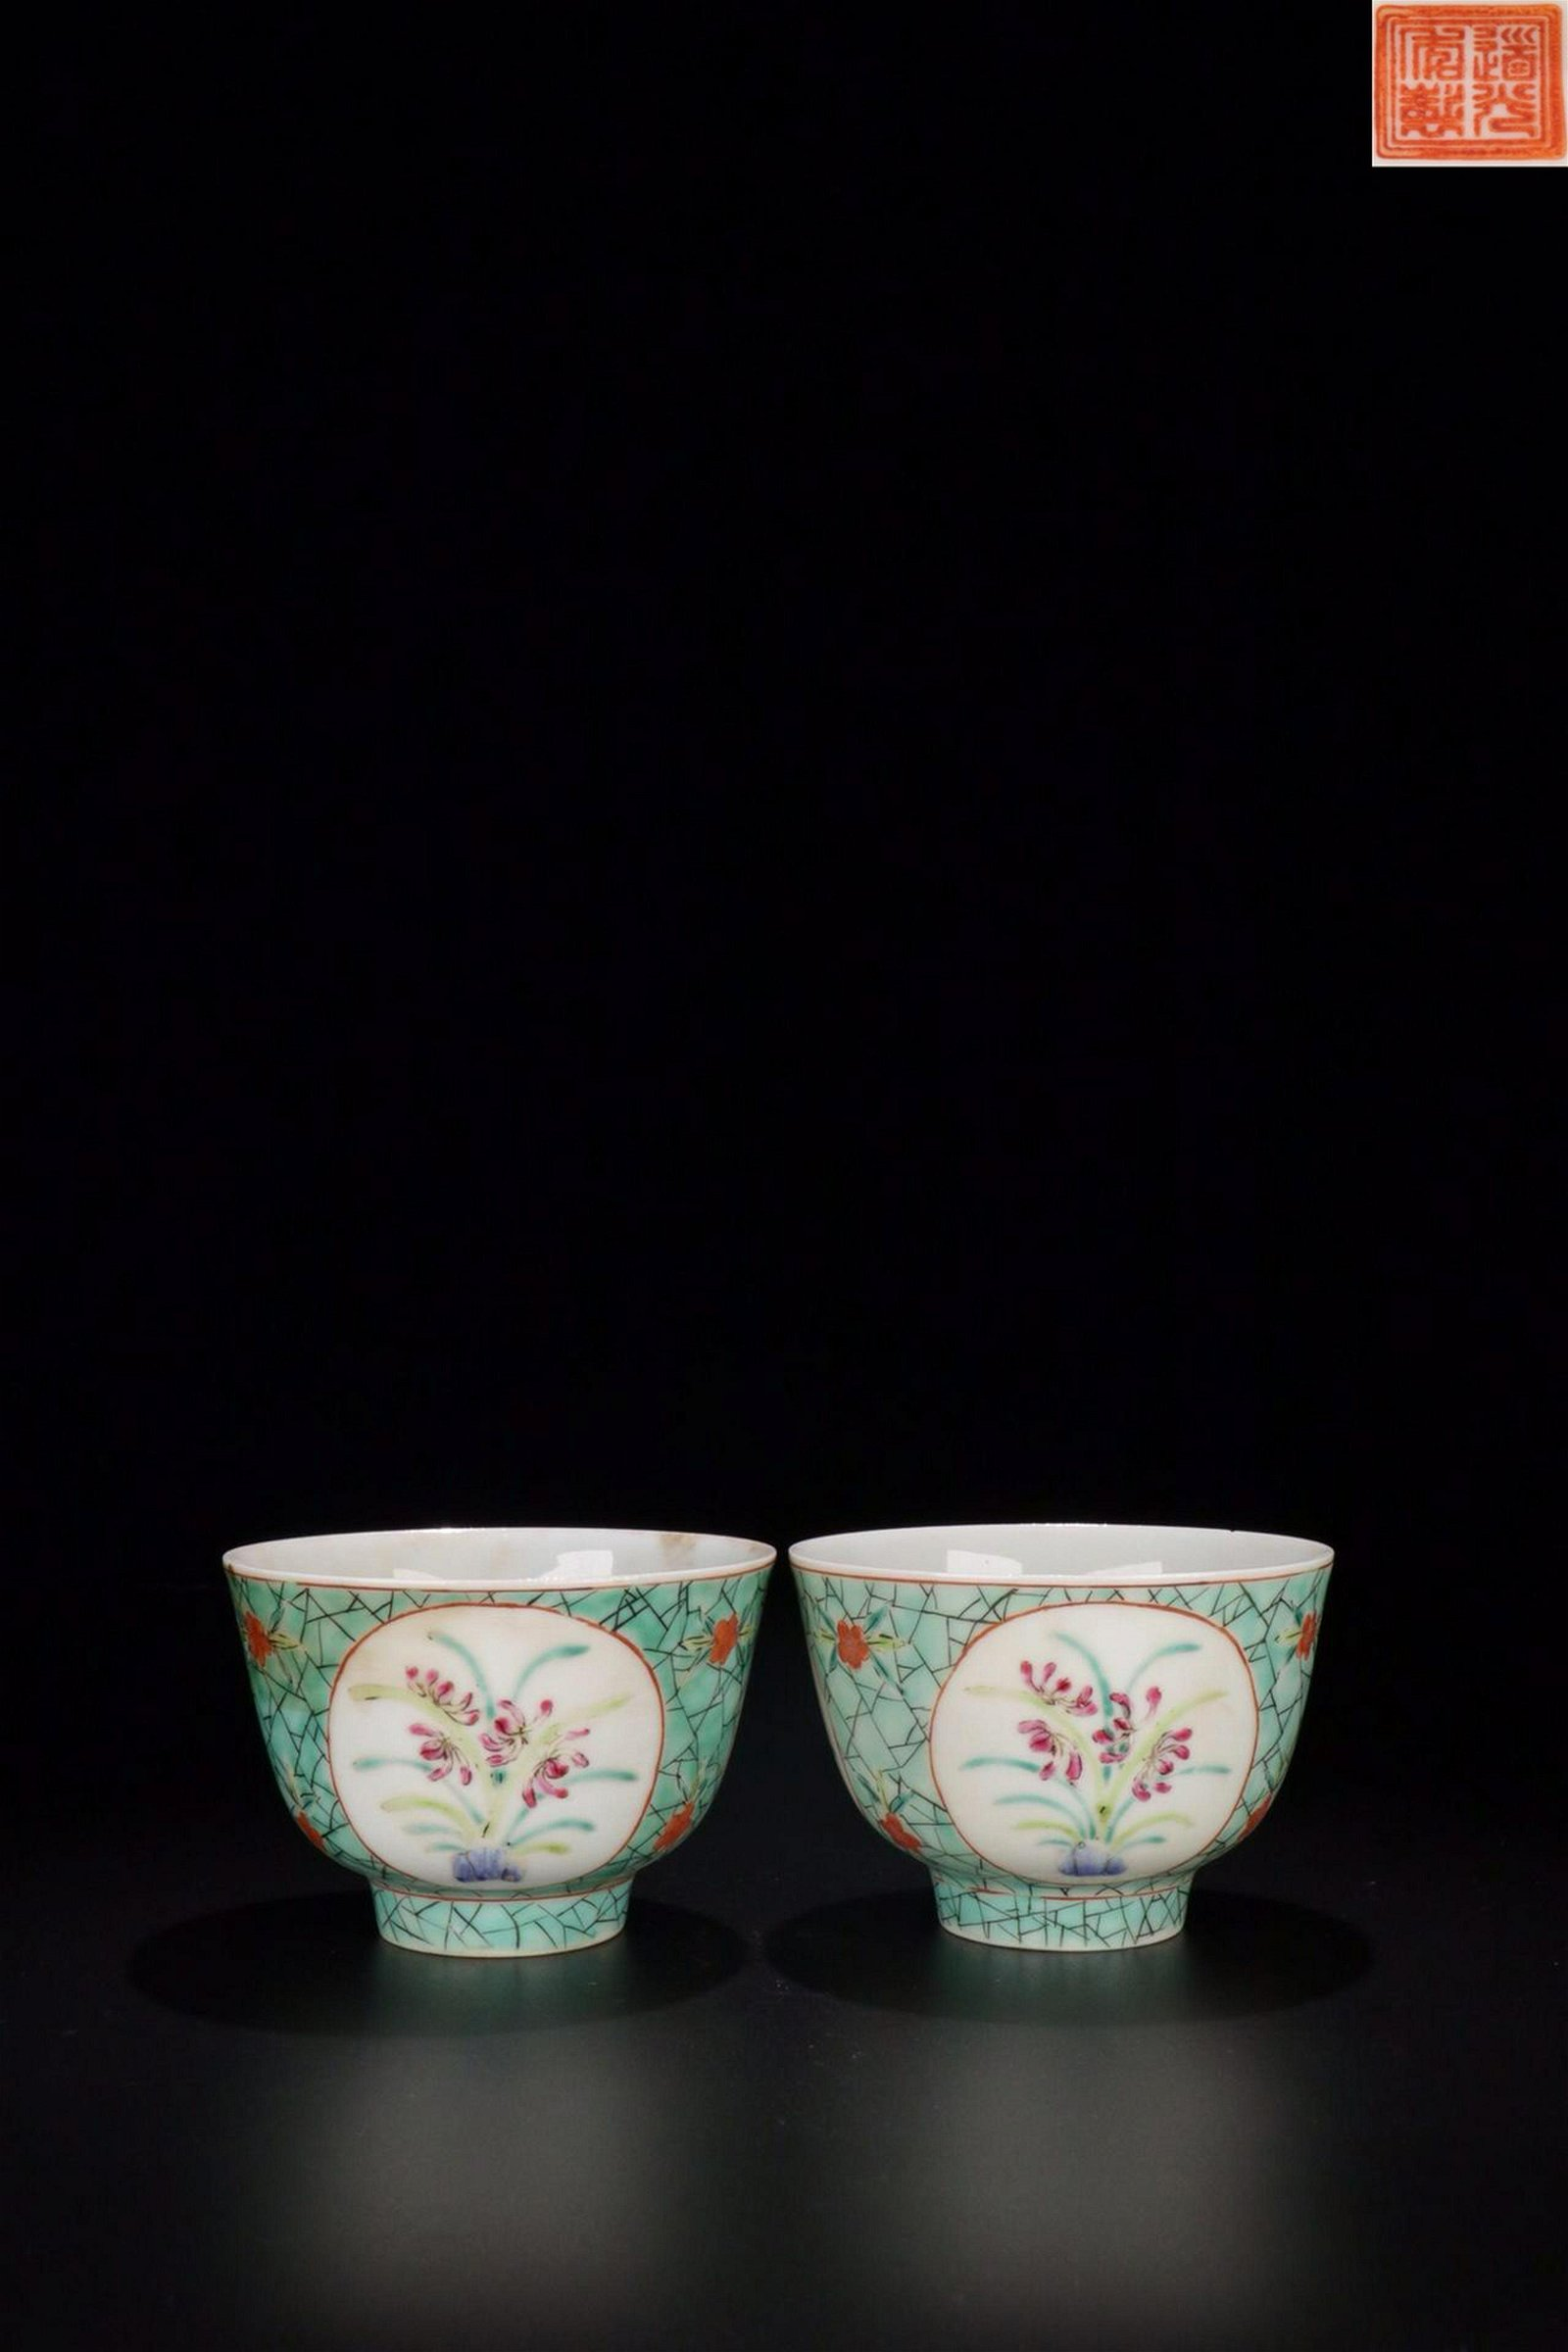 A PAIR OF TURQUOISE GLAZE DAFFODIL PATTERN TEA CUPS